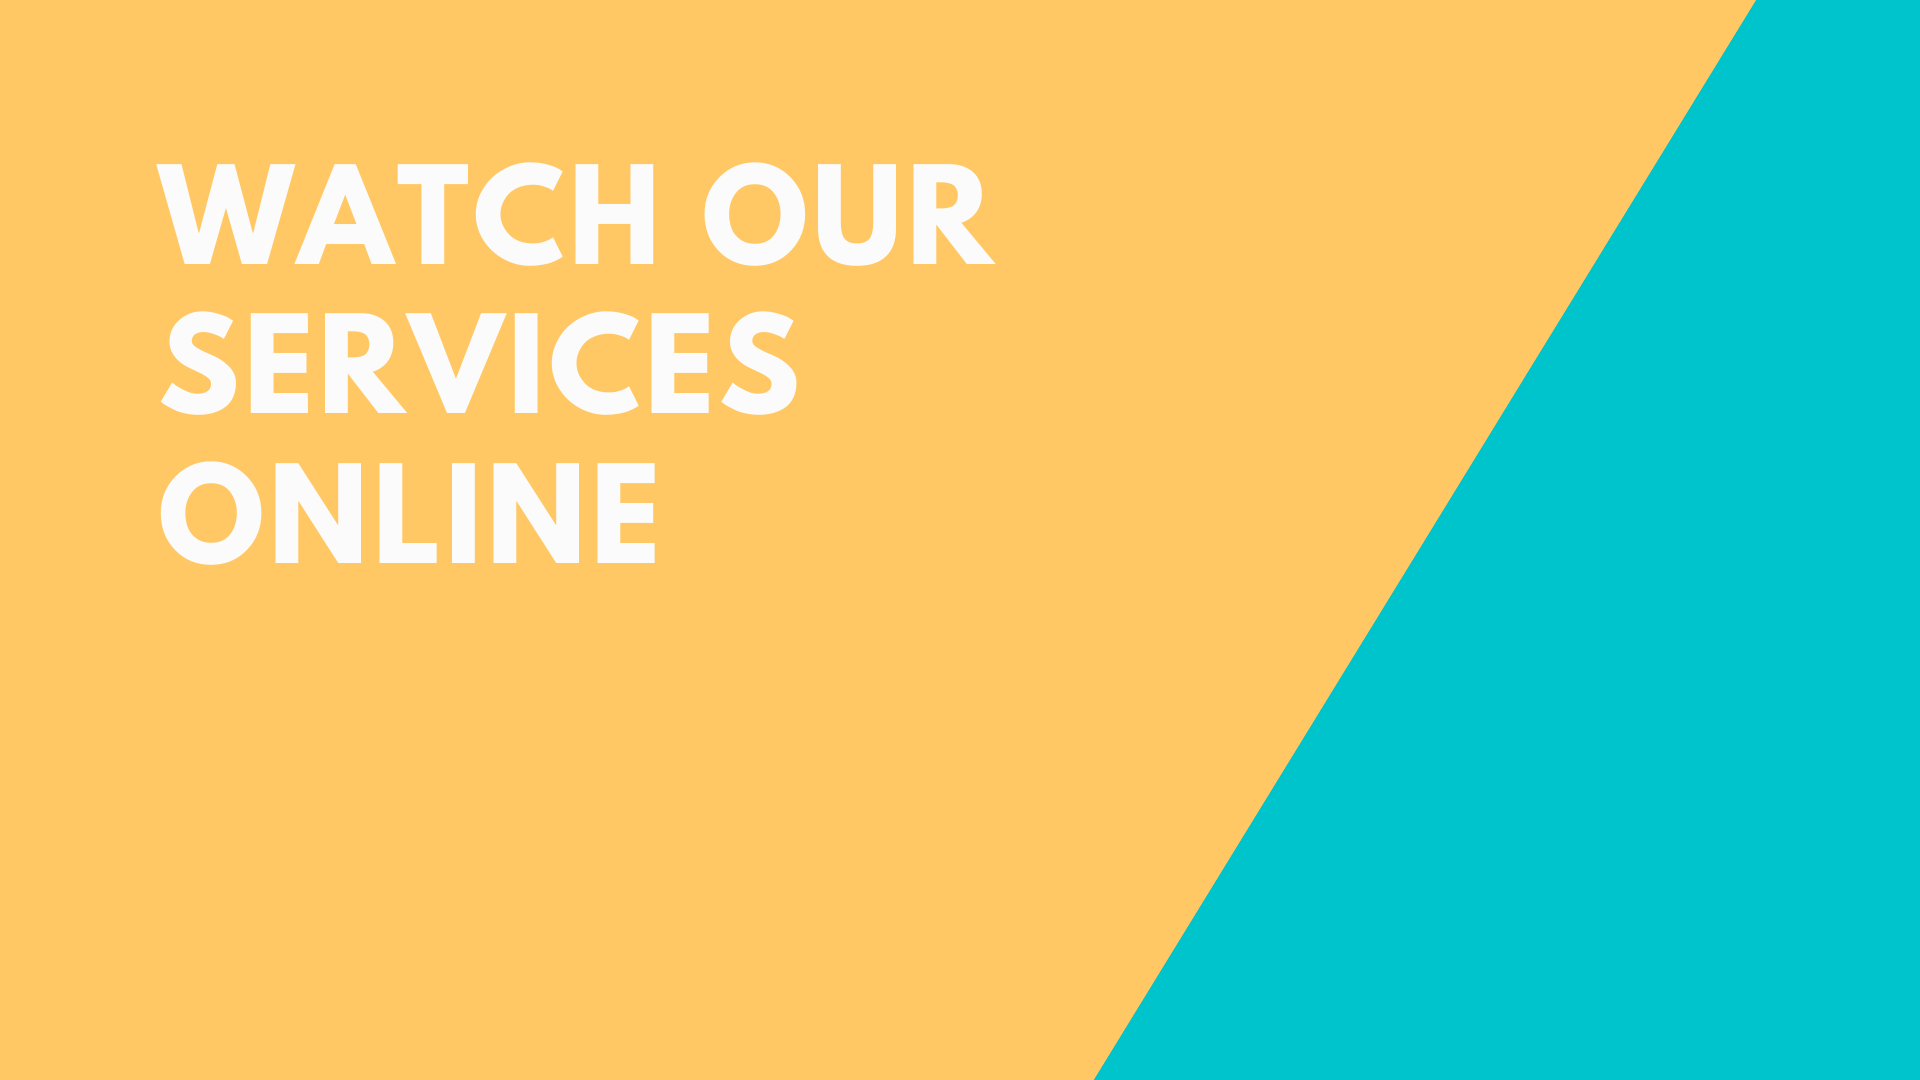 Watch our services online